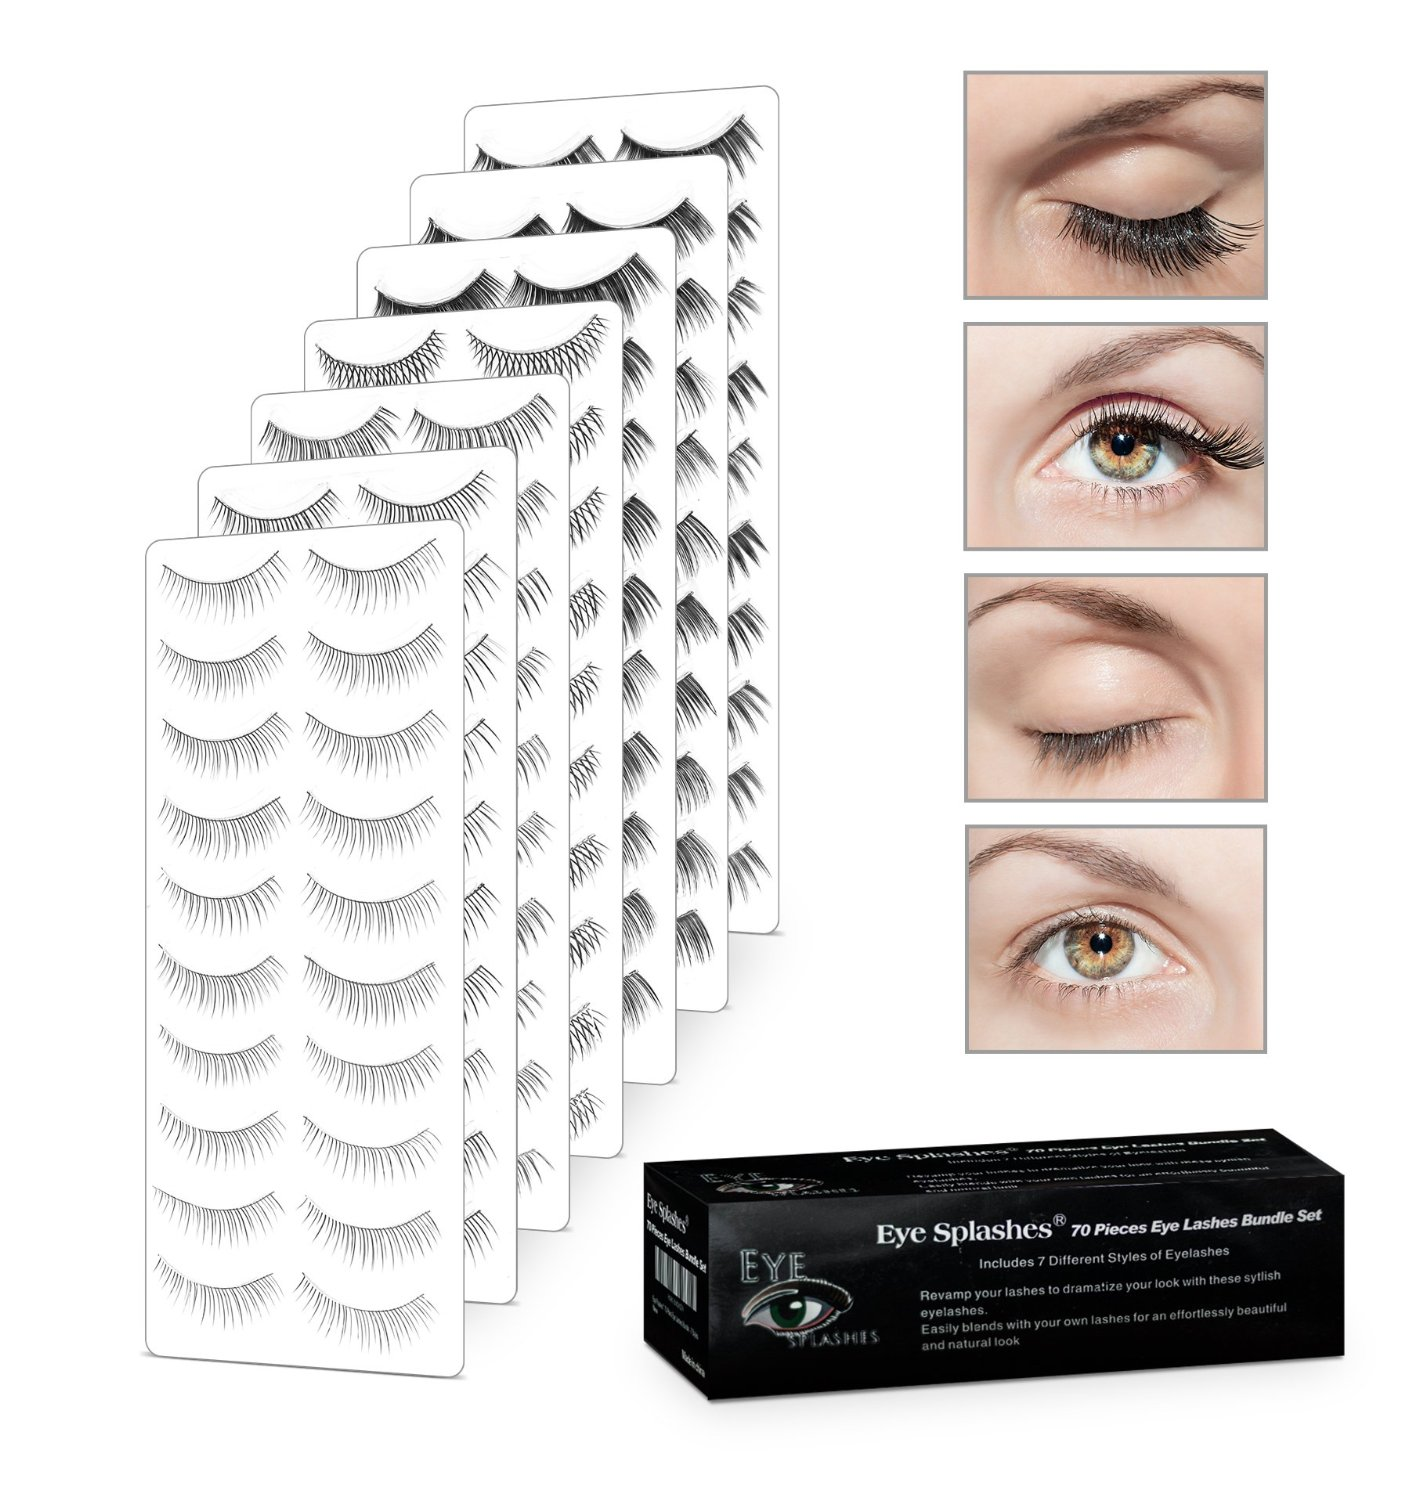 Salona Eye Splashes False Eyelashes 70 Pair Set